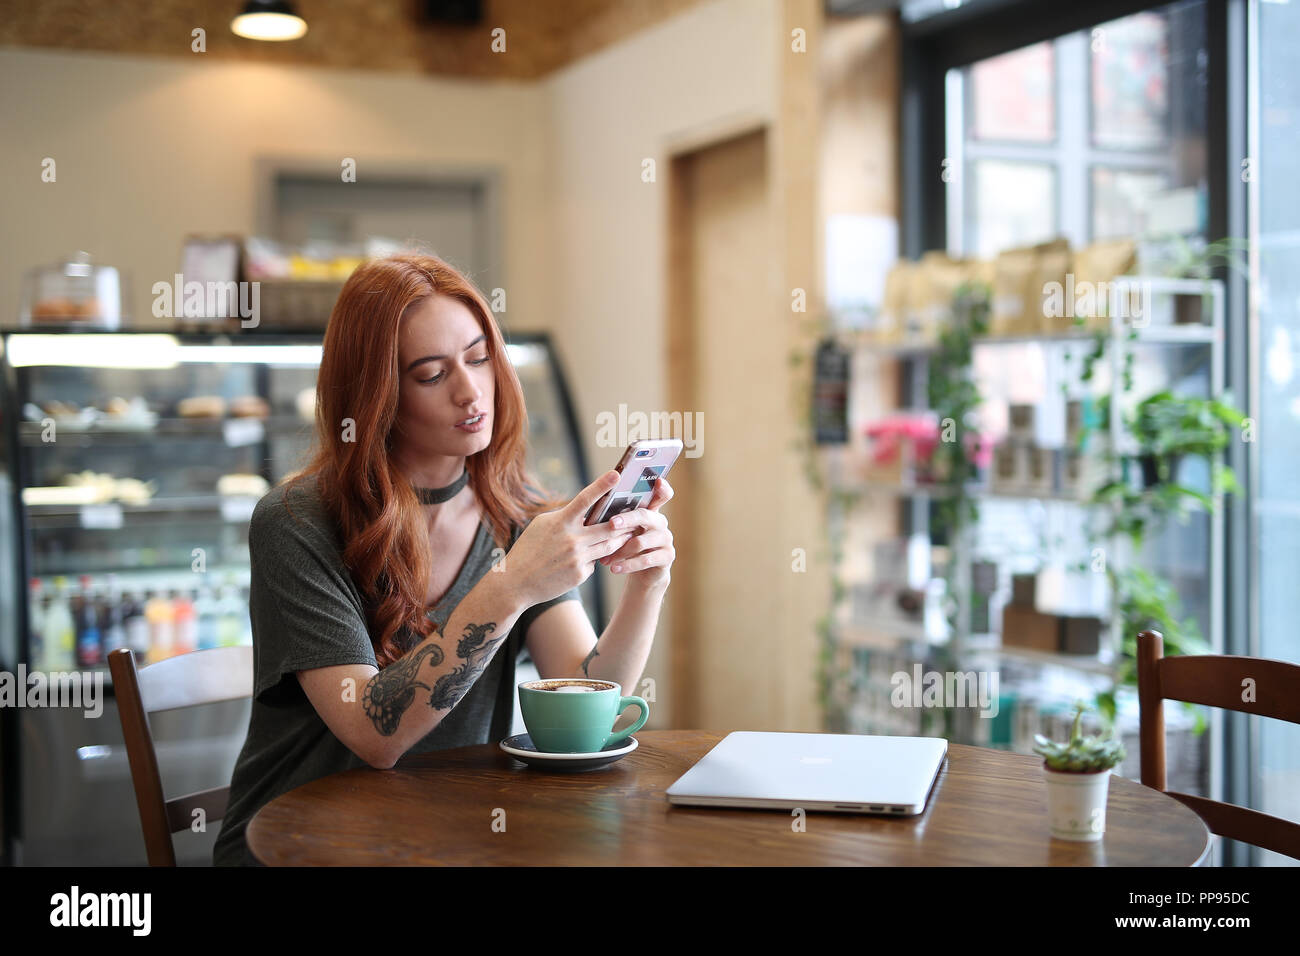 5ed323135 Red Head girl wIth arm Tattoo, sitting alone in a cafe looking at her mobile